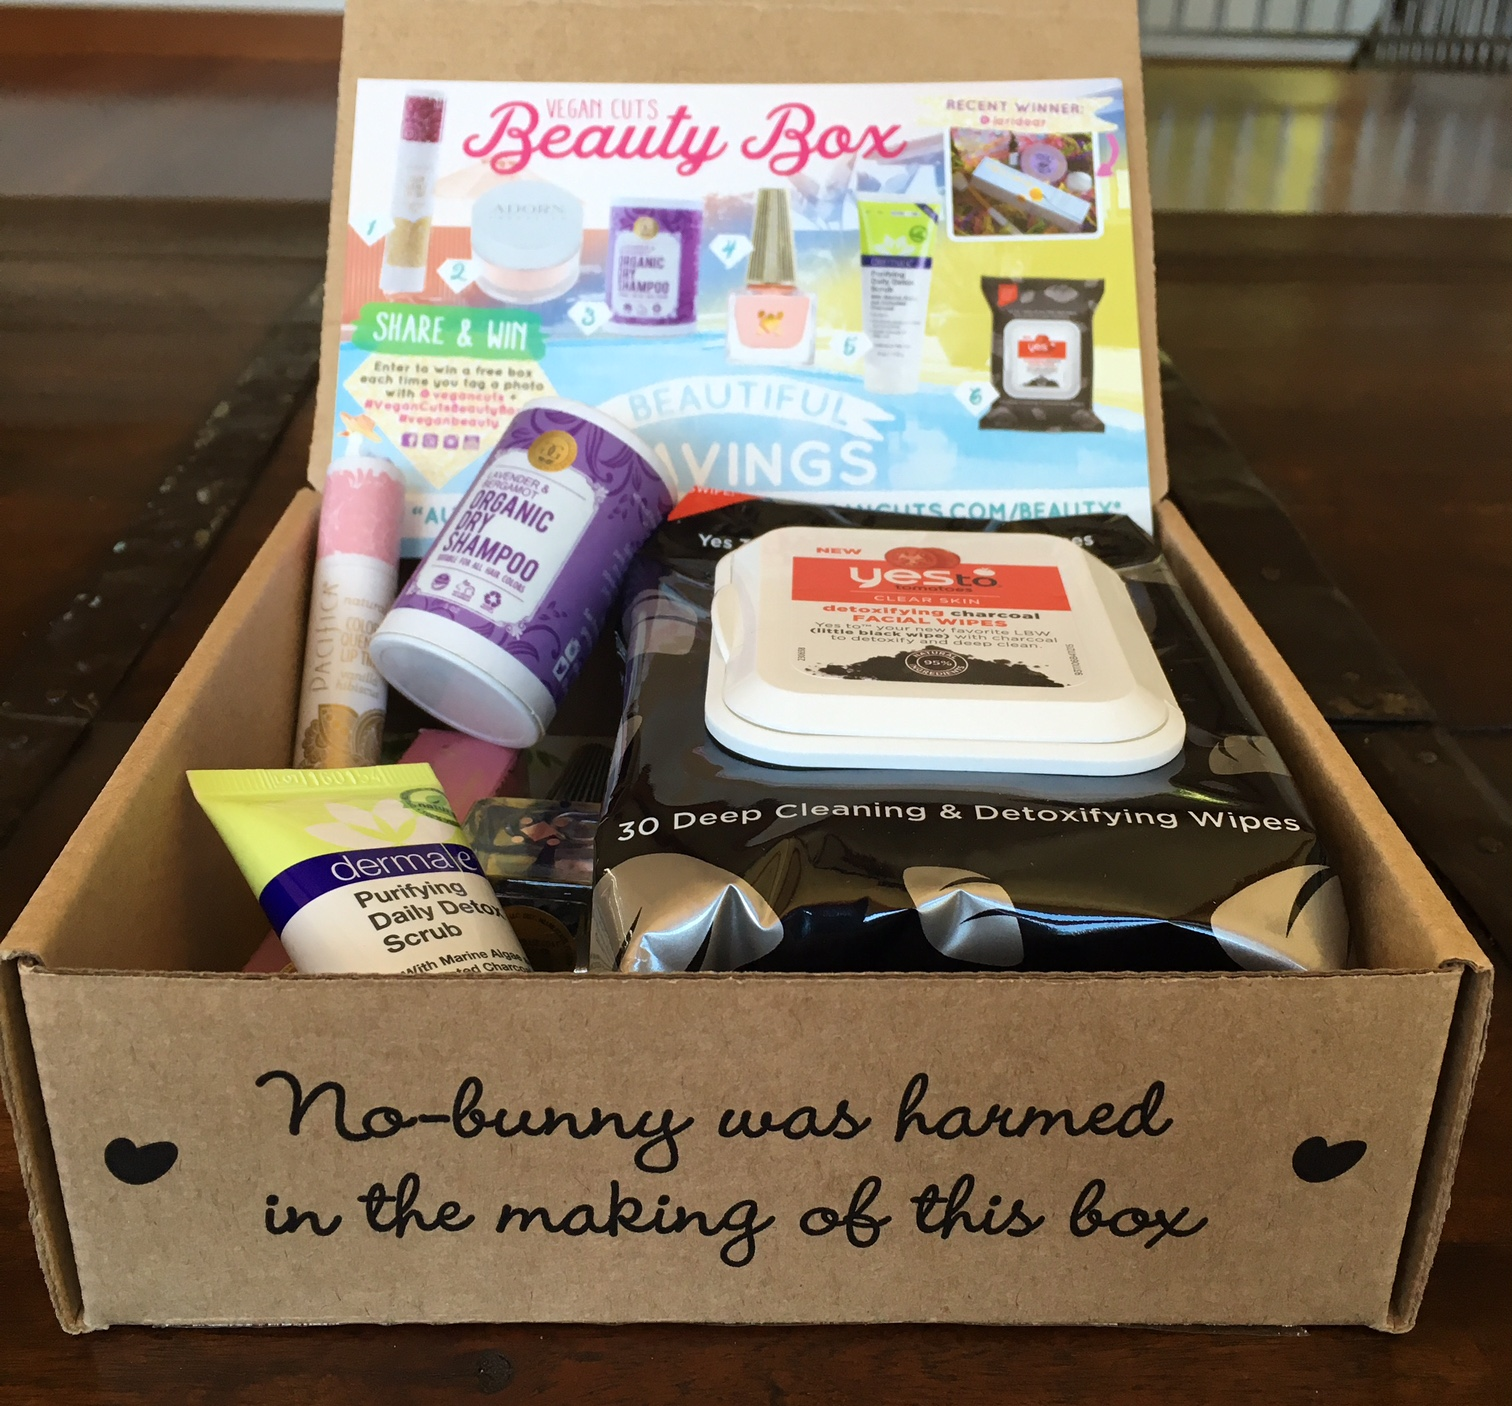 august 2016 vegan cuts beauty box review vegan beauty review vegan and cruelty free beauty. Black Bedroom Furniture Sets. Home Design Ideas